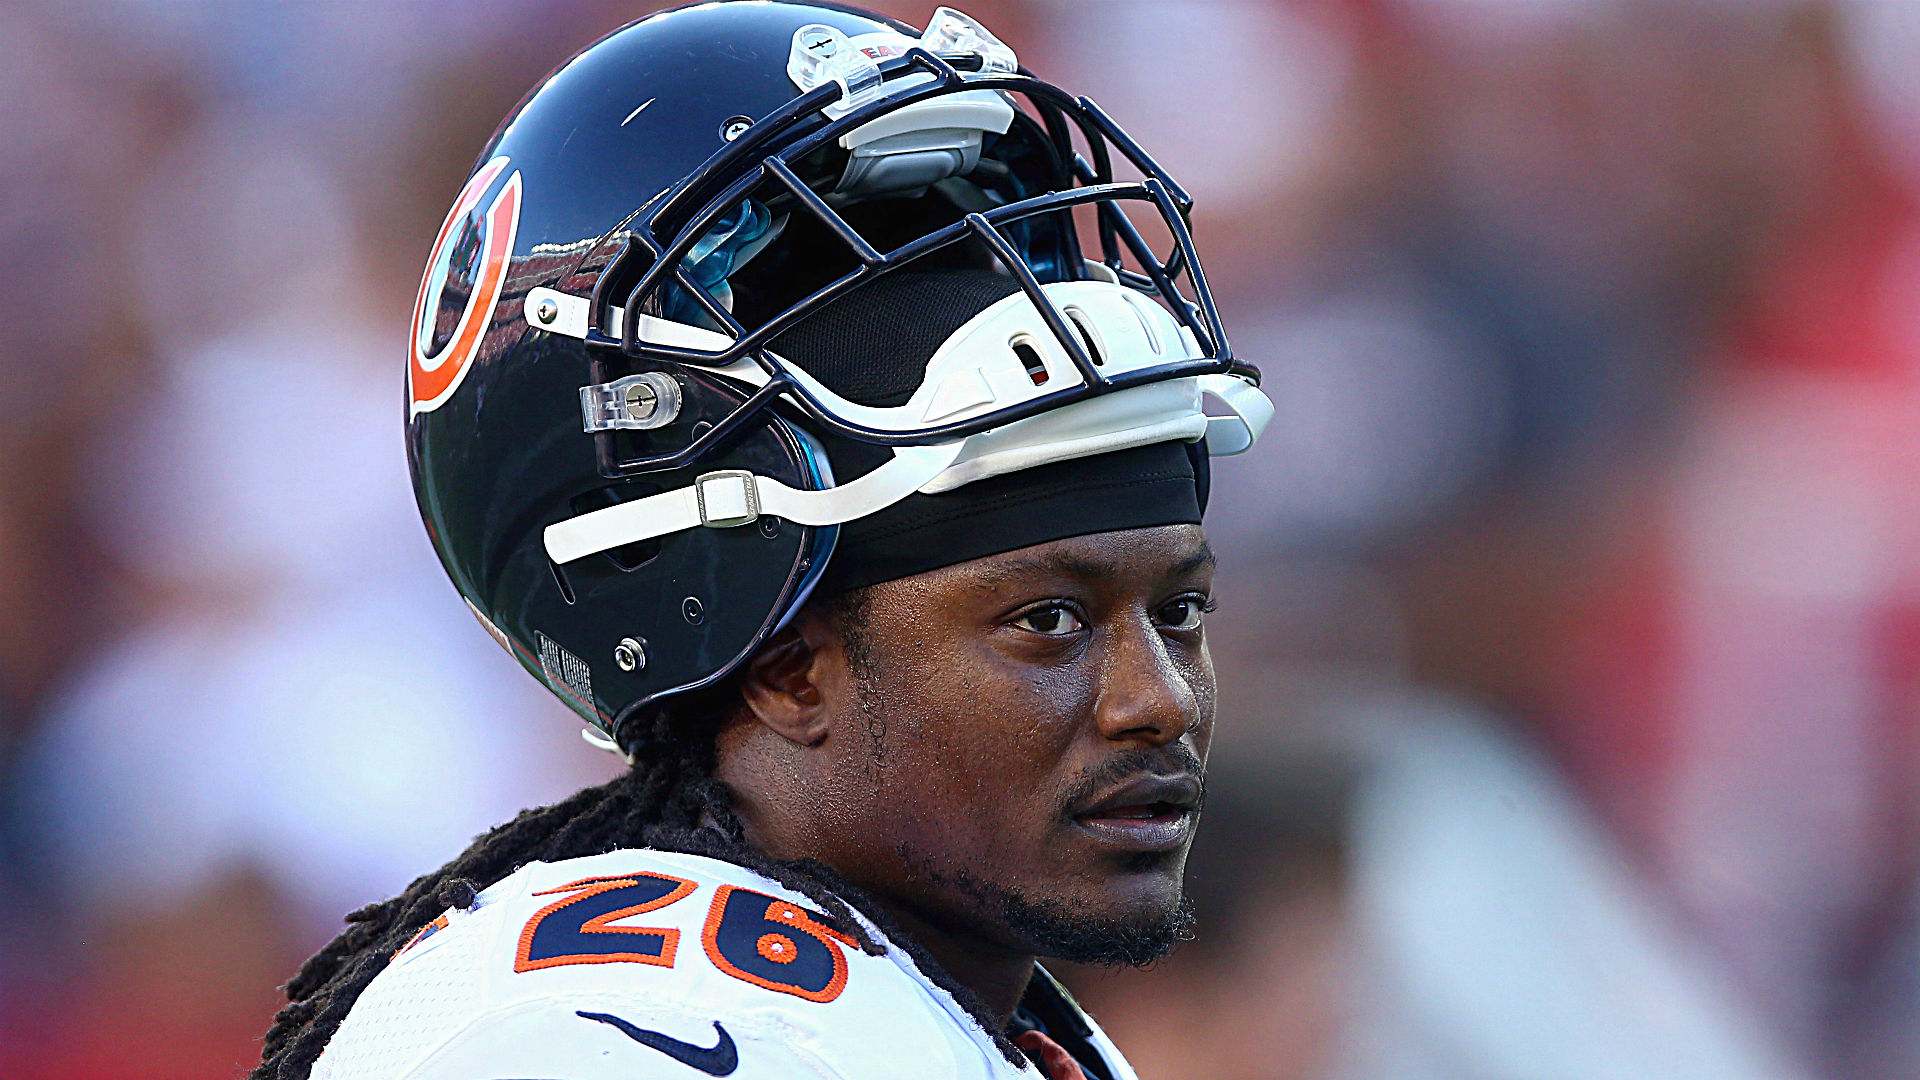 Bears cornerback Tim Jennings pleads out in DUI case